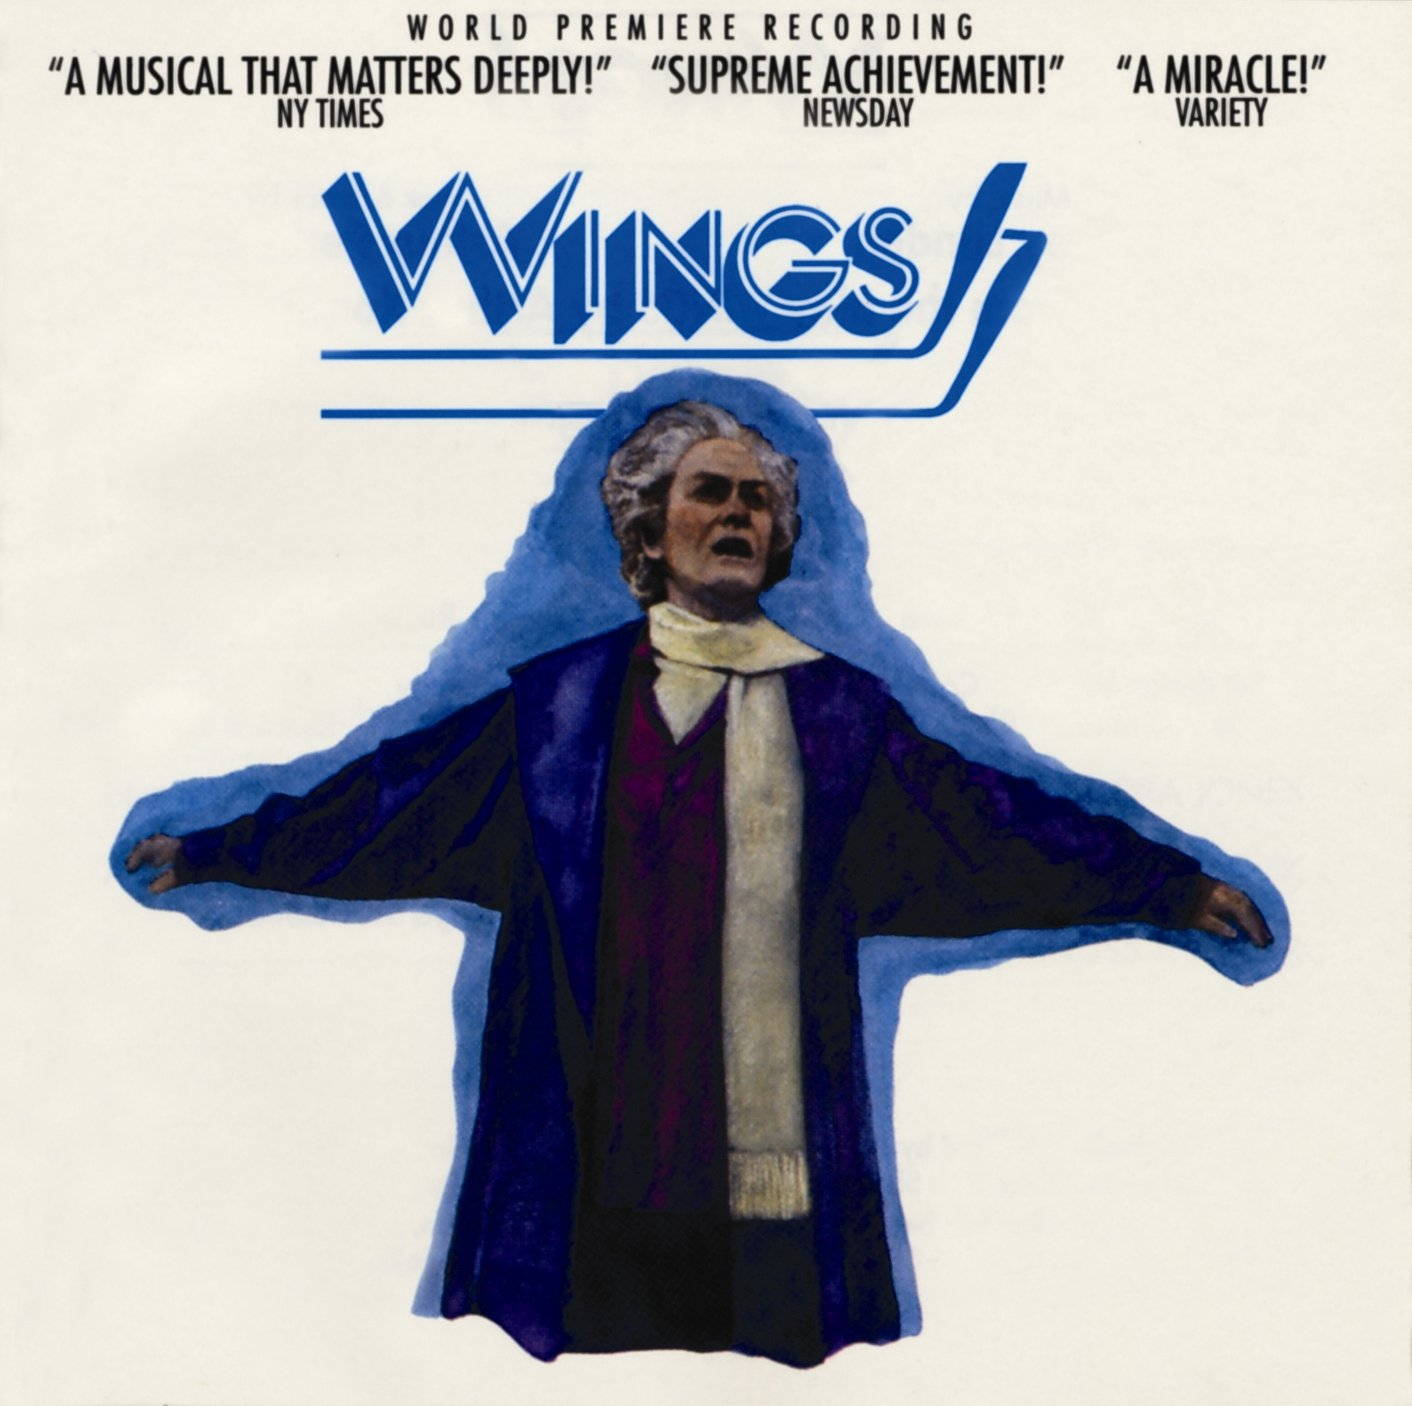 Wings – Original Off-Broadway Cast (Arkiv version) 1993